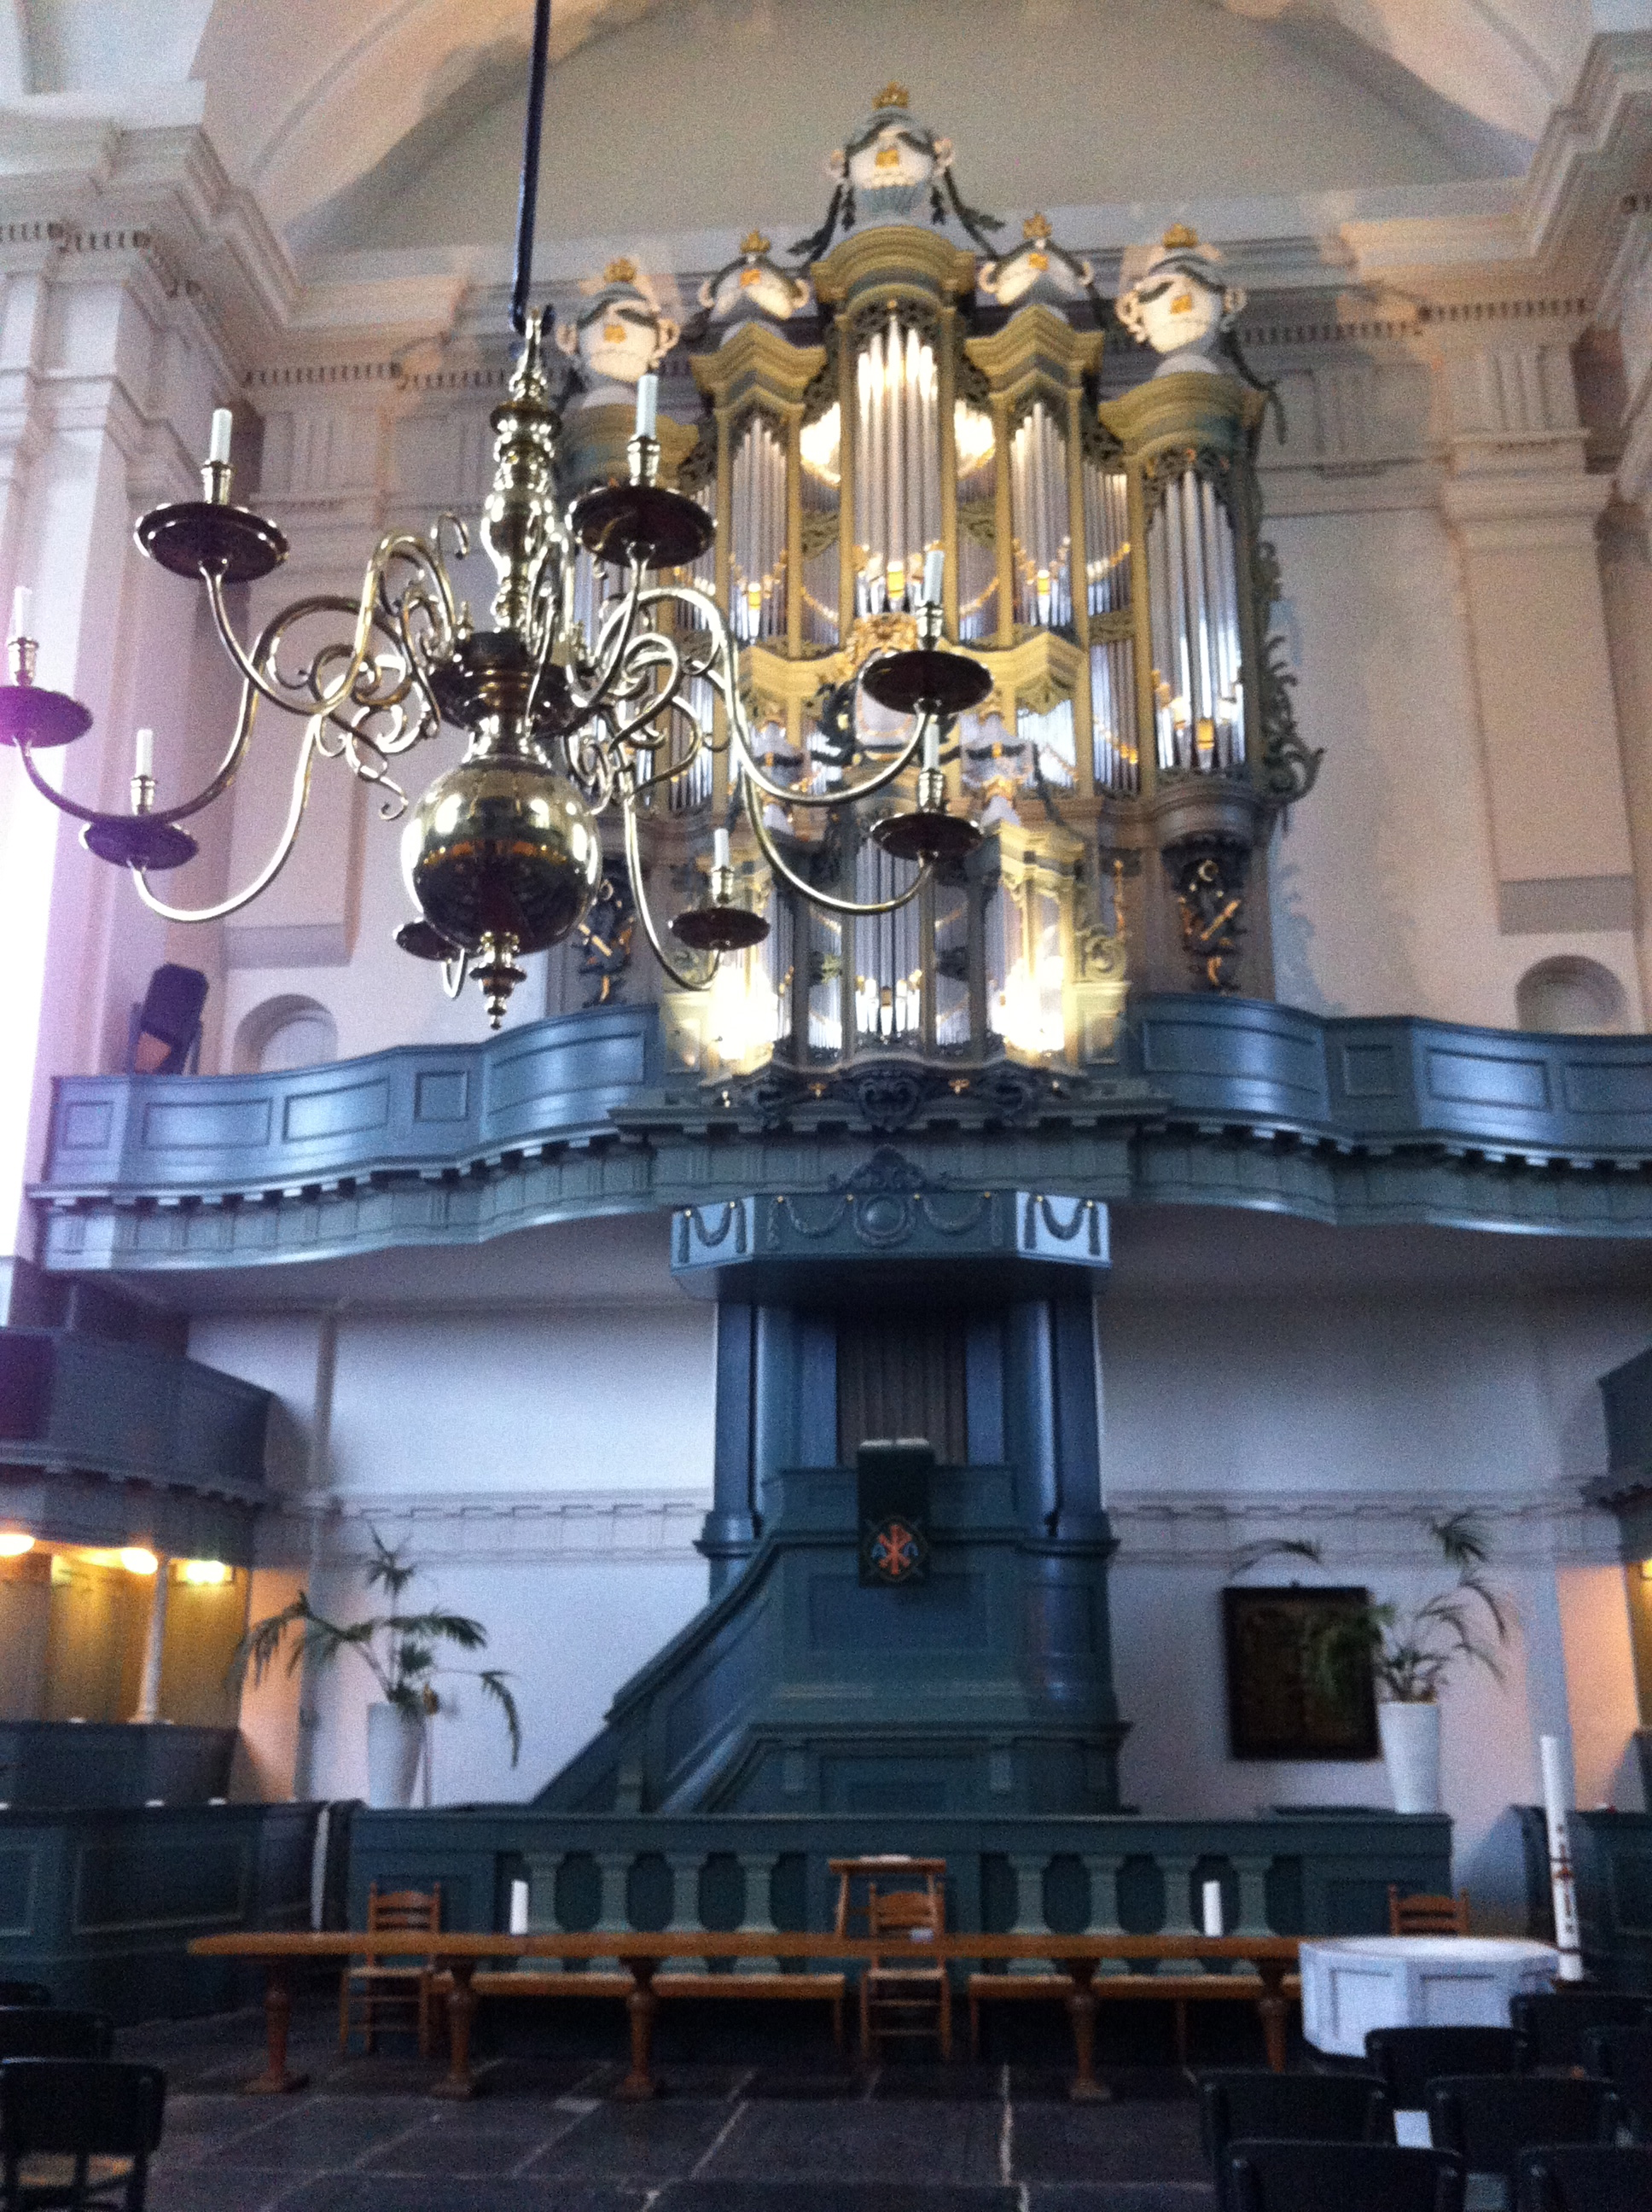 18th century pipe organ.